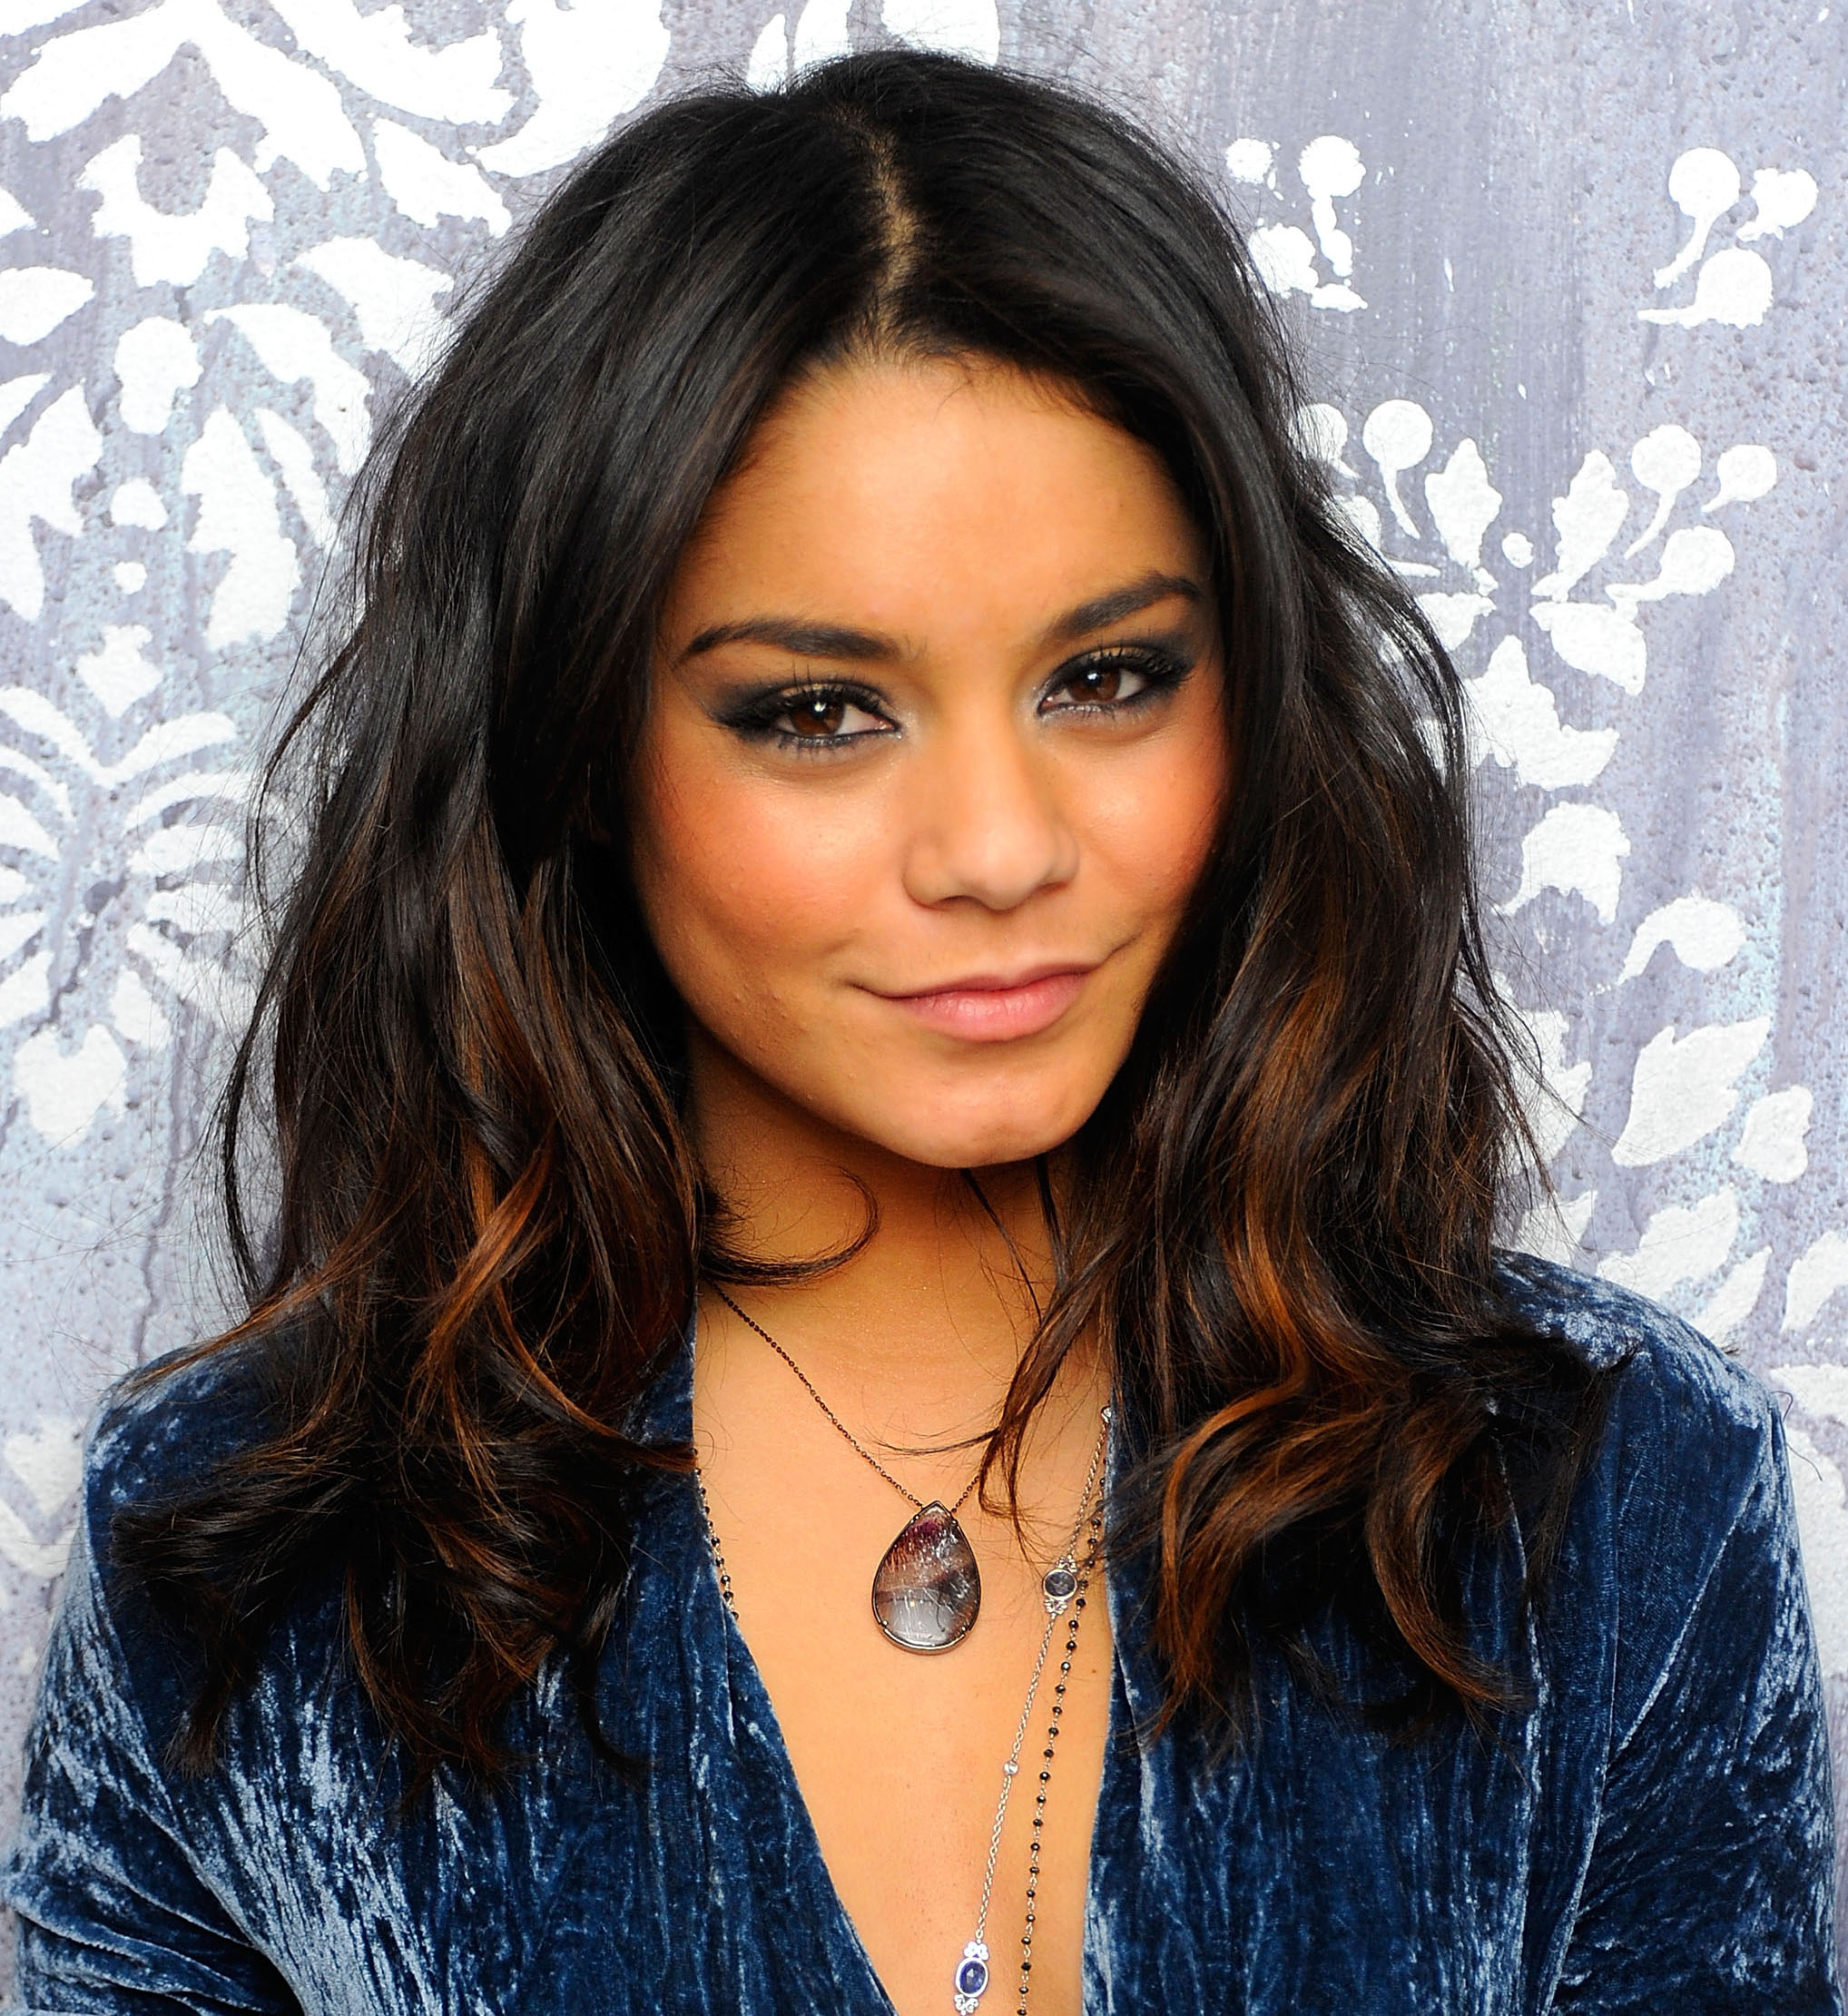 Vanessa Hudgens, Vanessa Hudgens photos, hot celebrity women